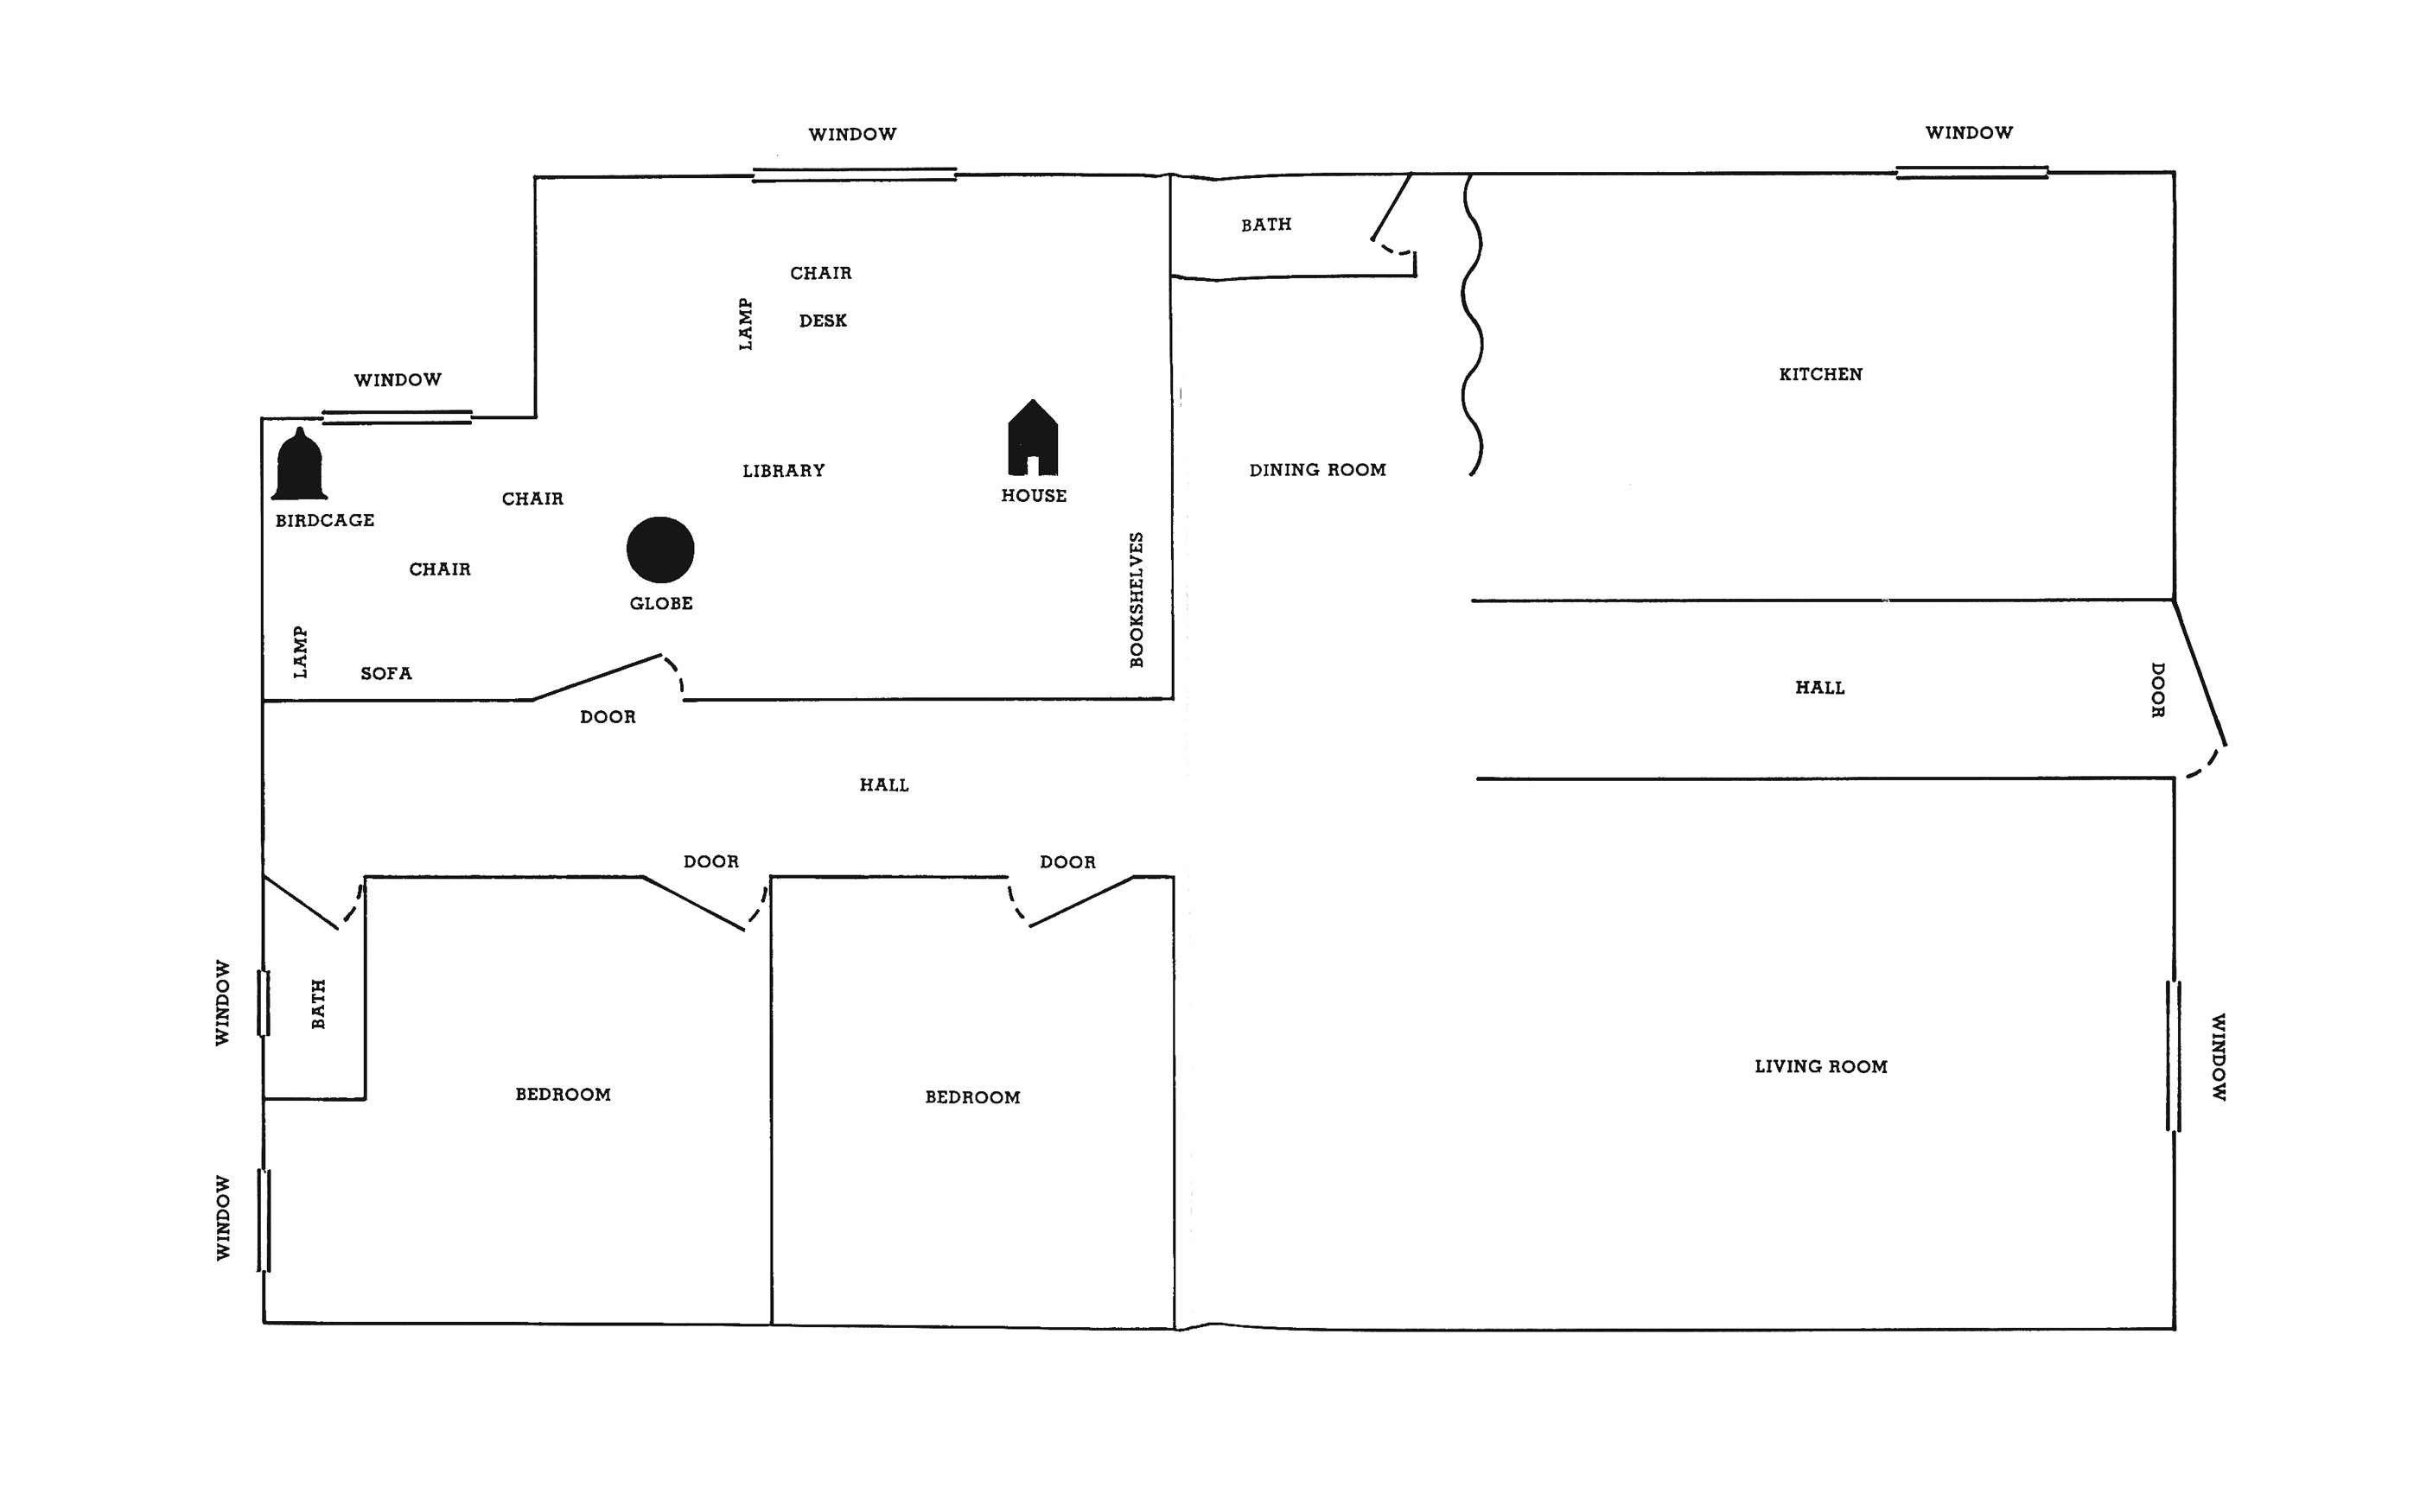 architecture floor plan drawing